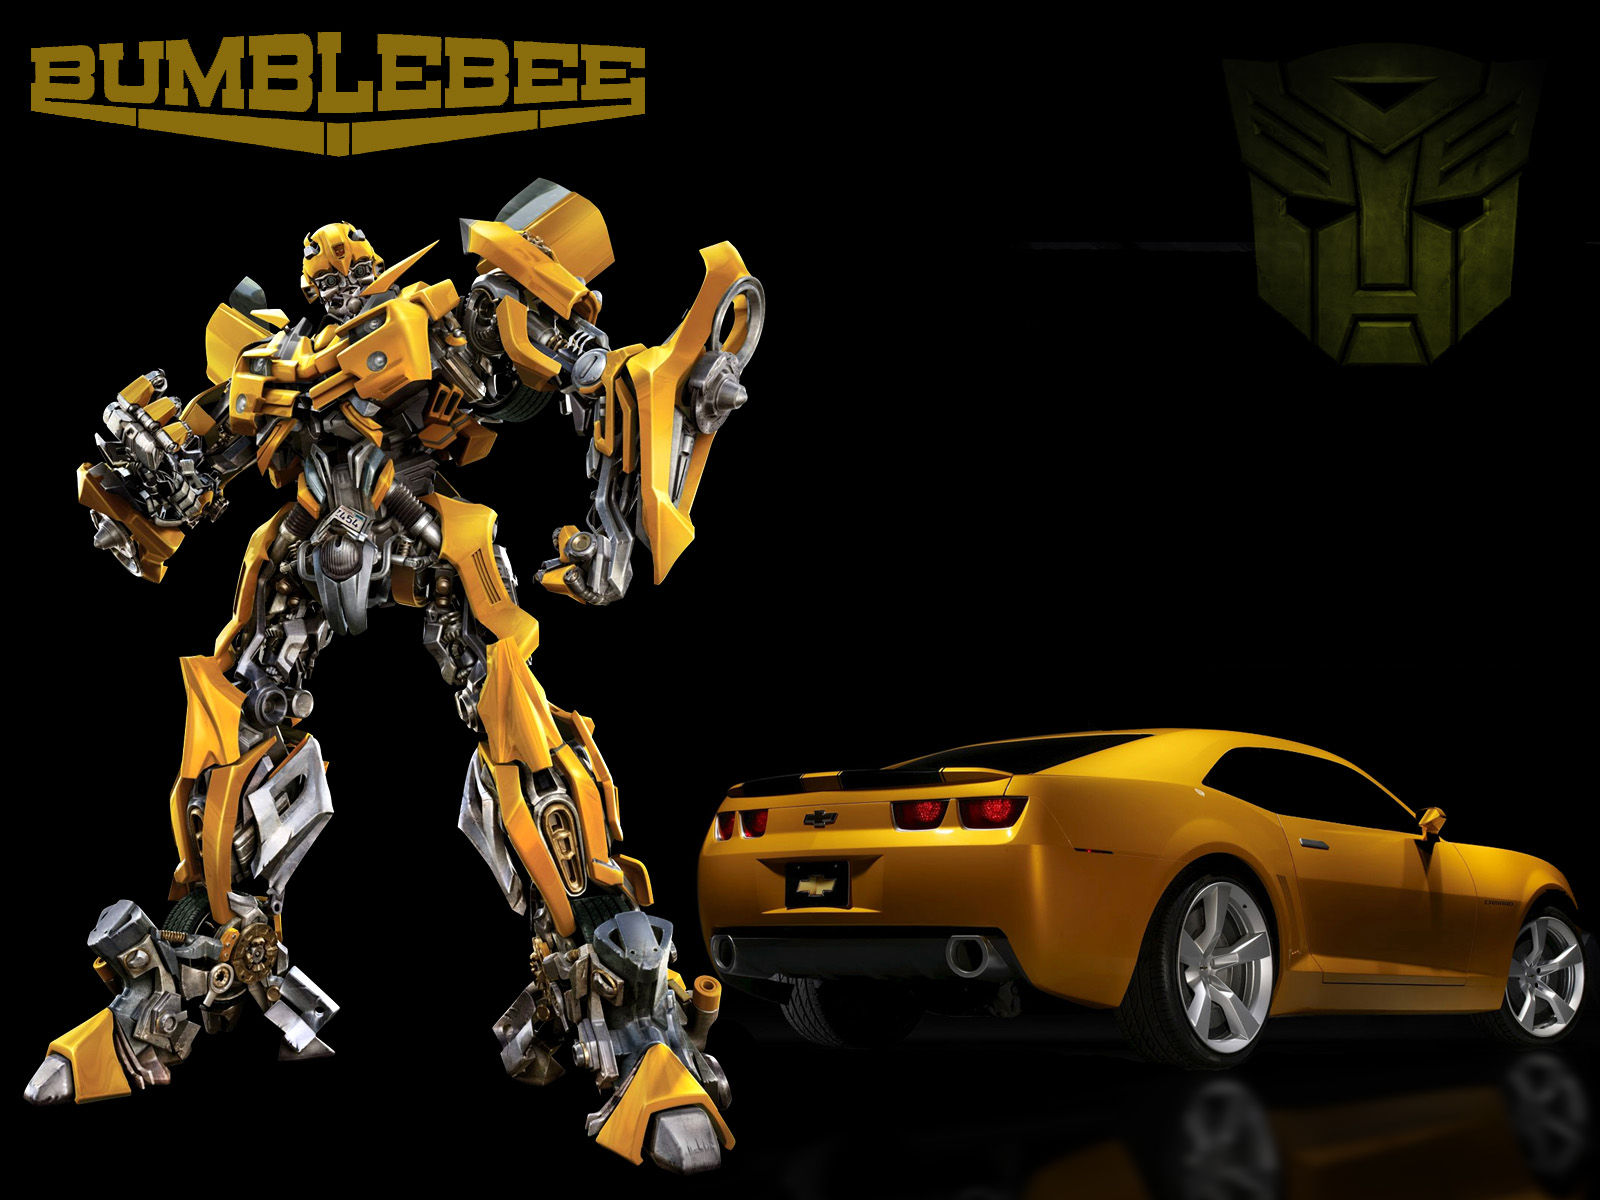 BUMBLEBEE OF THE TRANSFORMERS MET AN ACCIDENT